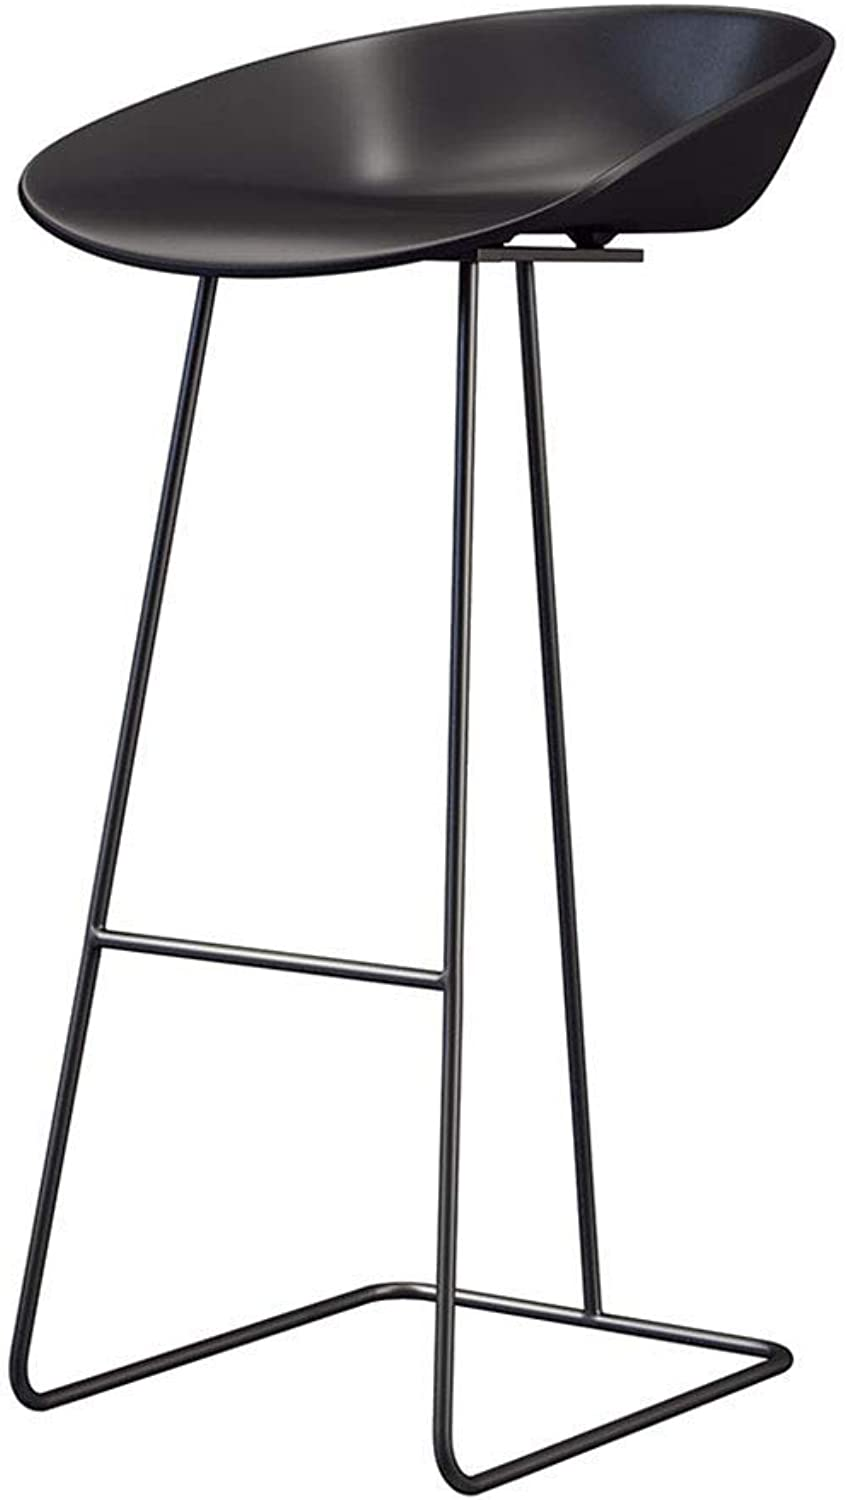 Barture Bar Stool-Nordic Bar Chair Wrought Iron Bar Table Chair Cafe Bar Stool Front High Stool Black (Size   65CM)